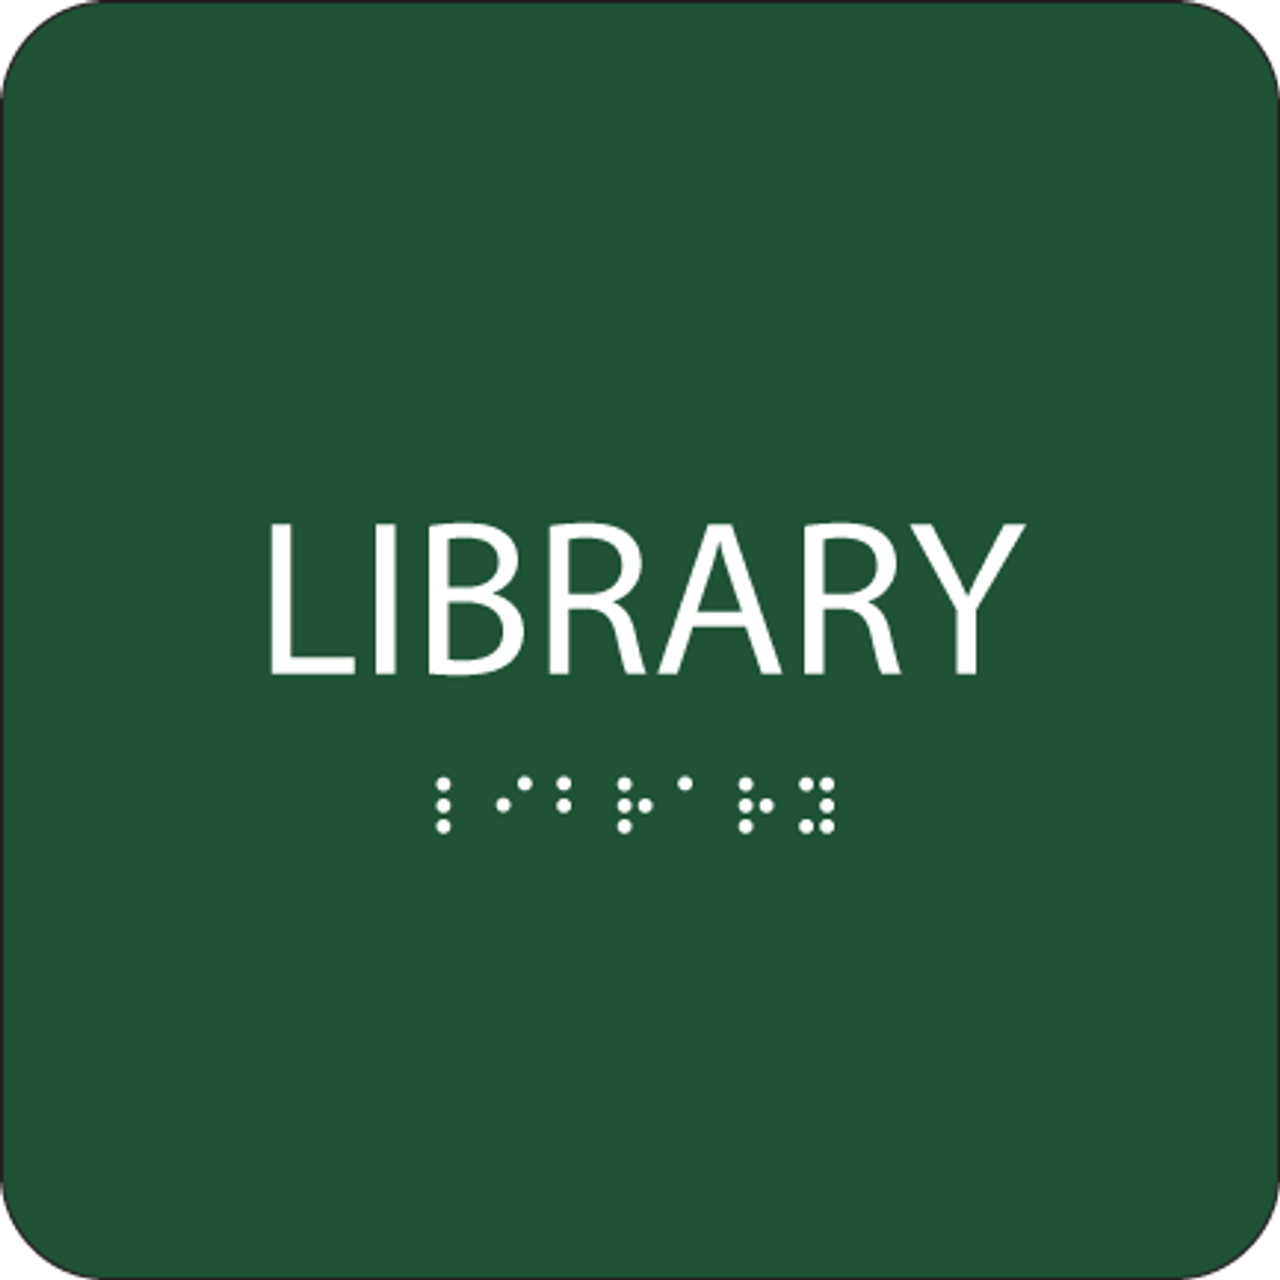 Green Library ADA Sign